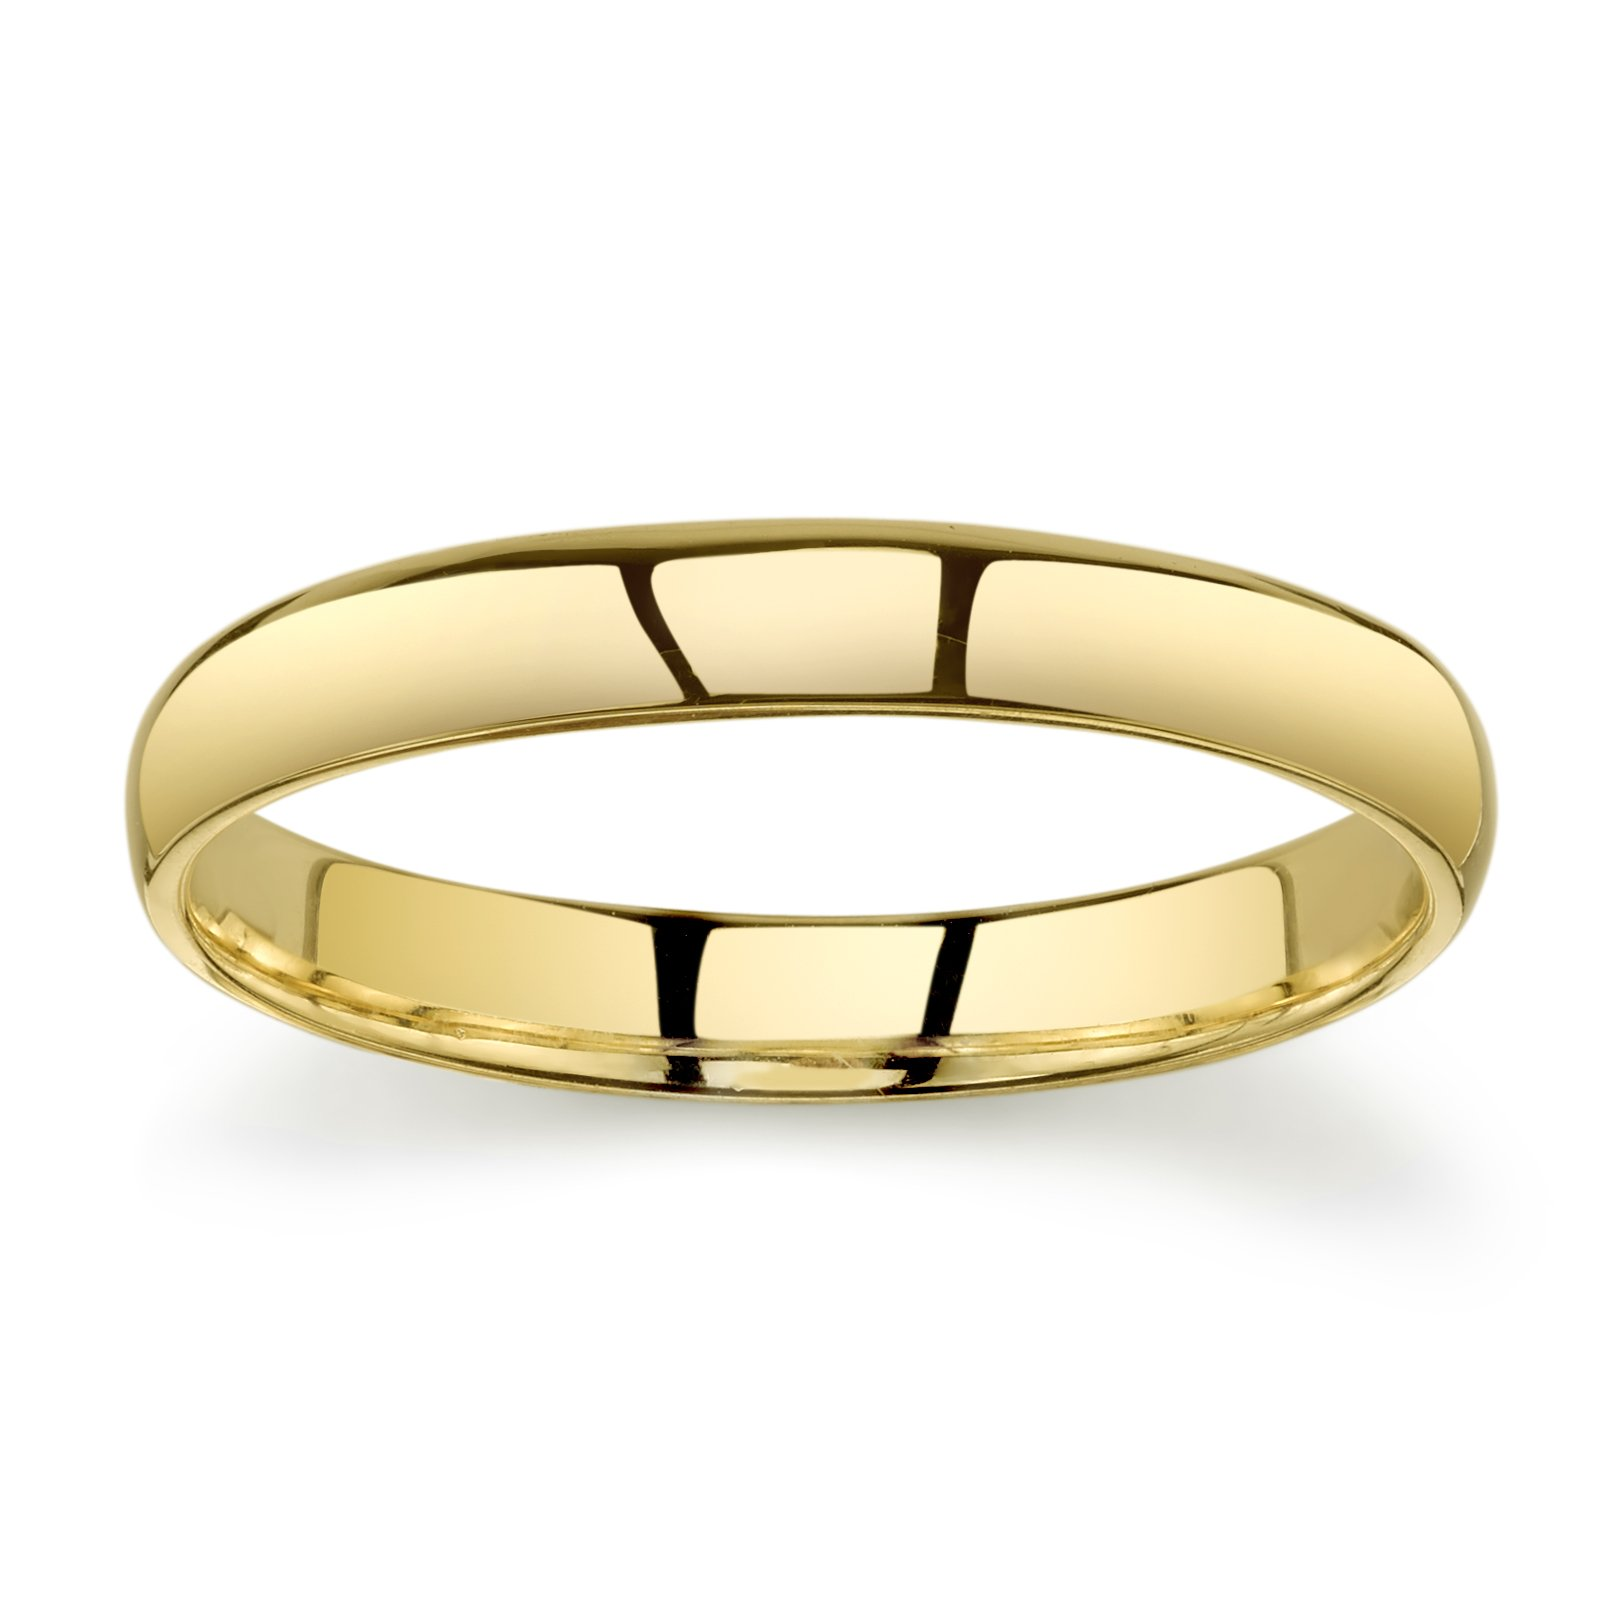 10k Yellow Gold Light Comfort Fit 3mm Wedding Band Size 9.5 by Tesori & Co (Image #3)